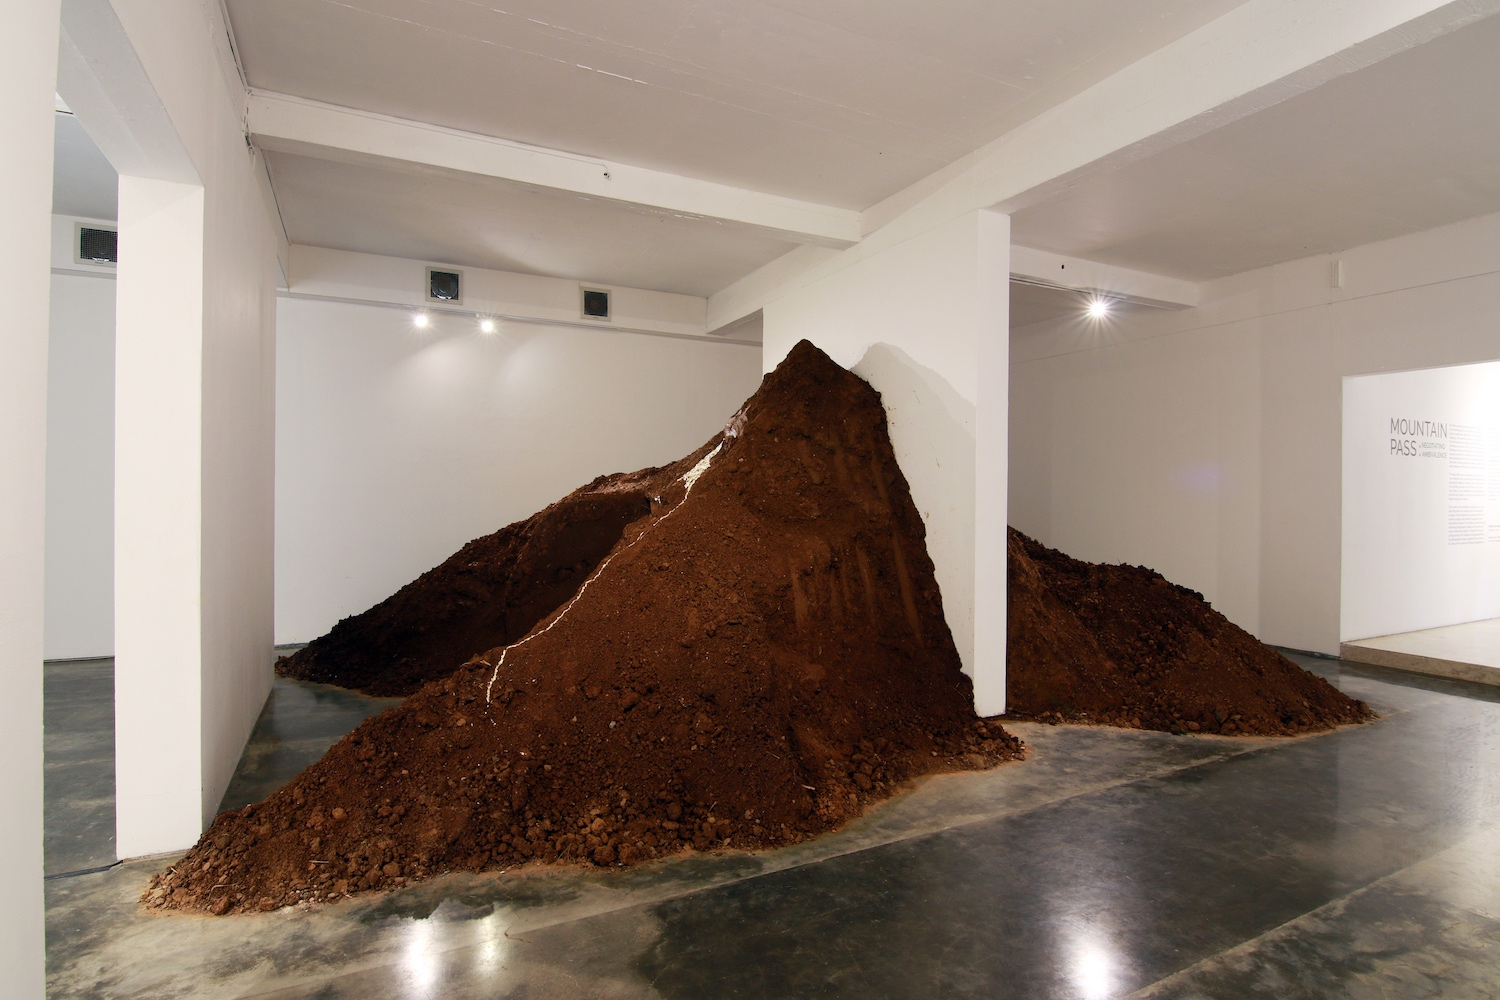 Zen Teh, 'Mountain Pass: Negotiating Ambivalence', 2019, exhibition installation view at Selasar Sunaryo Art Space in Bandung. Photograph by Adi Rahmatullah. Image courtesy of Selasar Sunaryo Art Space and Mizuma Gallery.